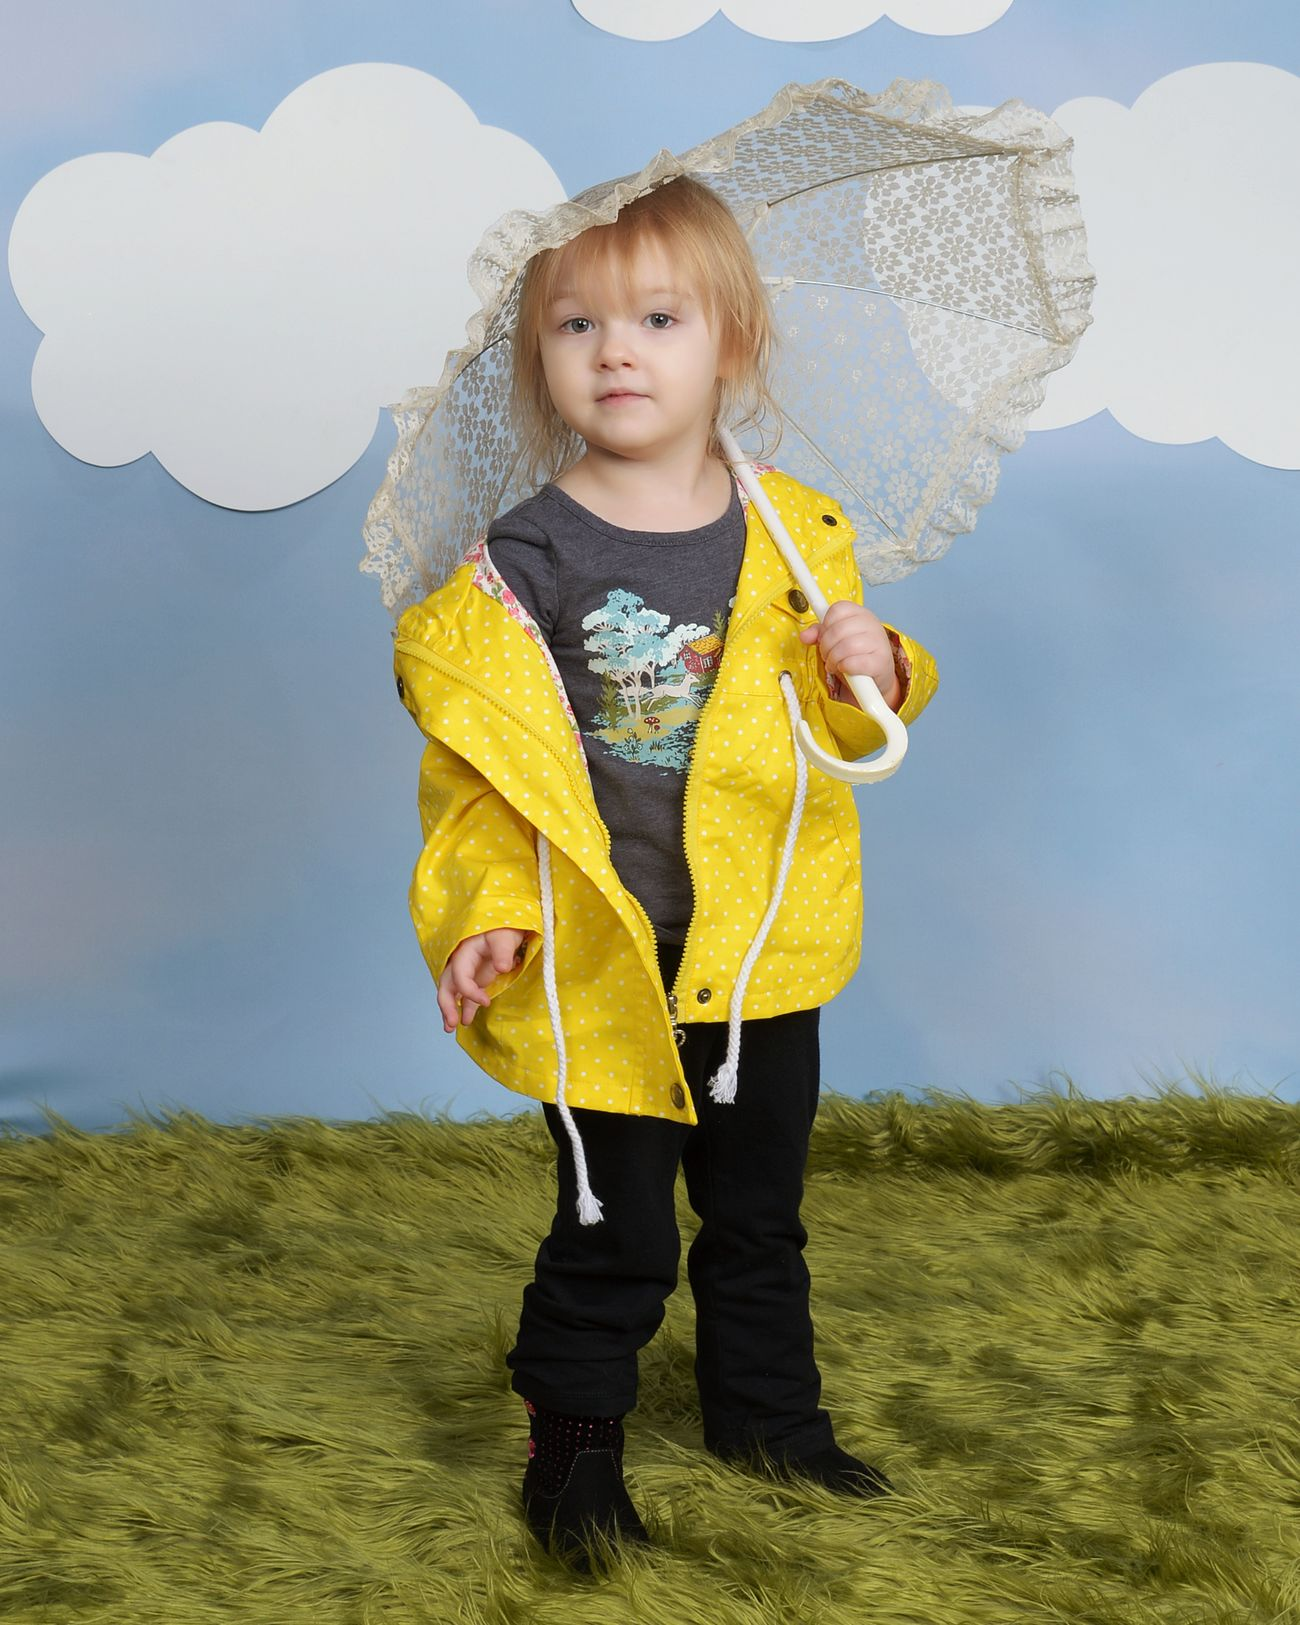 Child Portrait Childhood Toddler  Ember Little One Children Photography Raincoat Umbrella Clouds Studio Photography Studio Child Photography Singing In The Rain